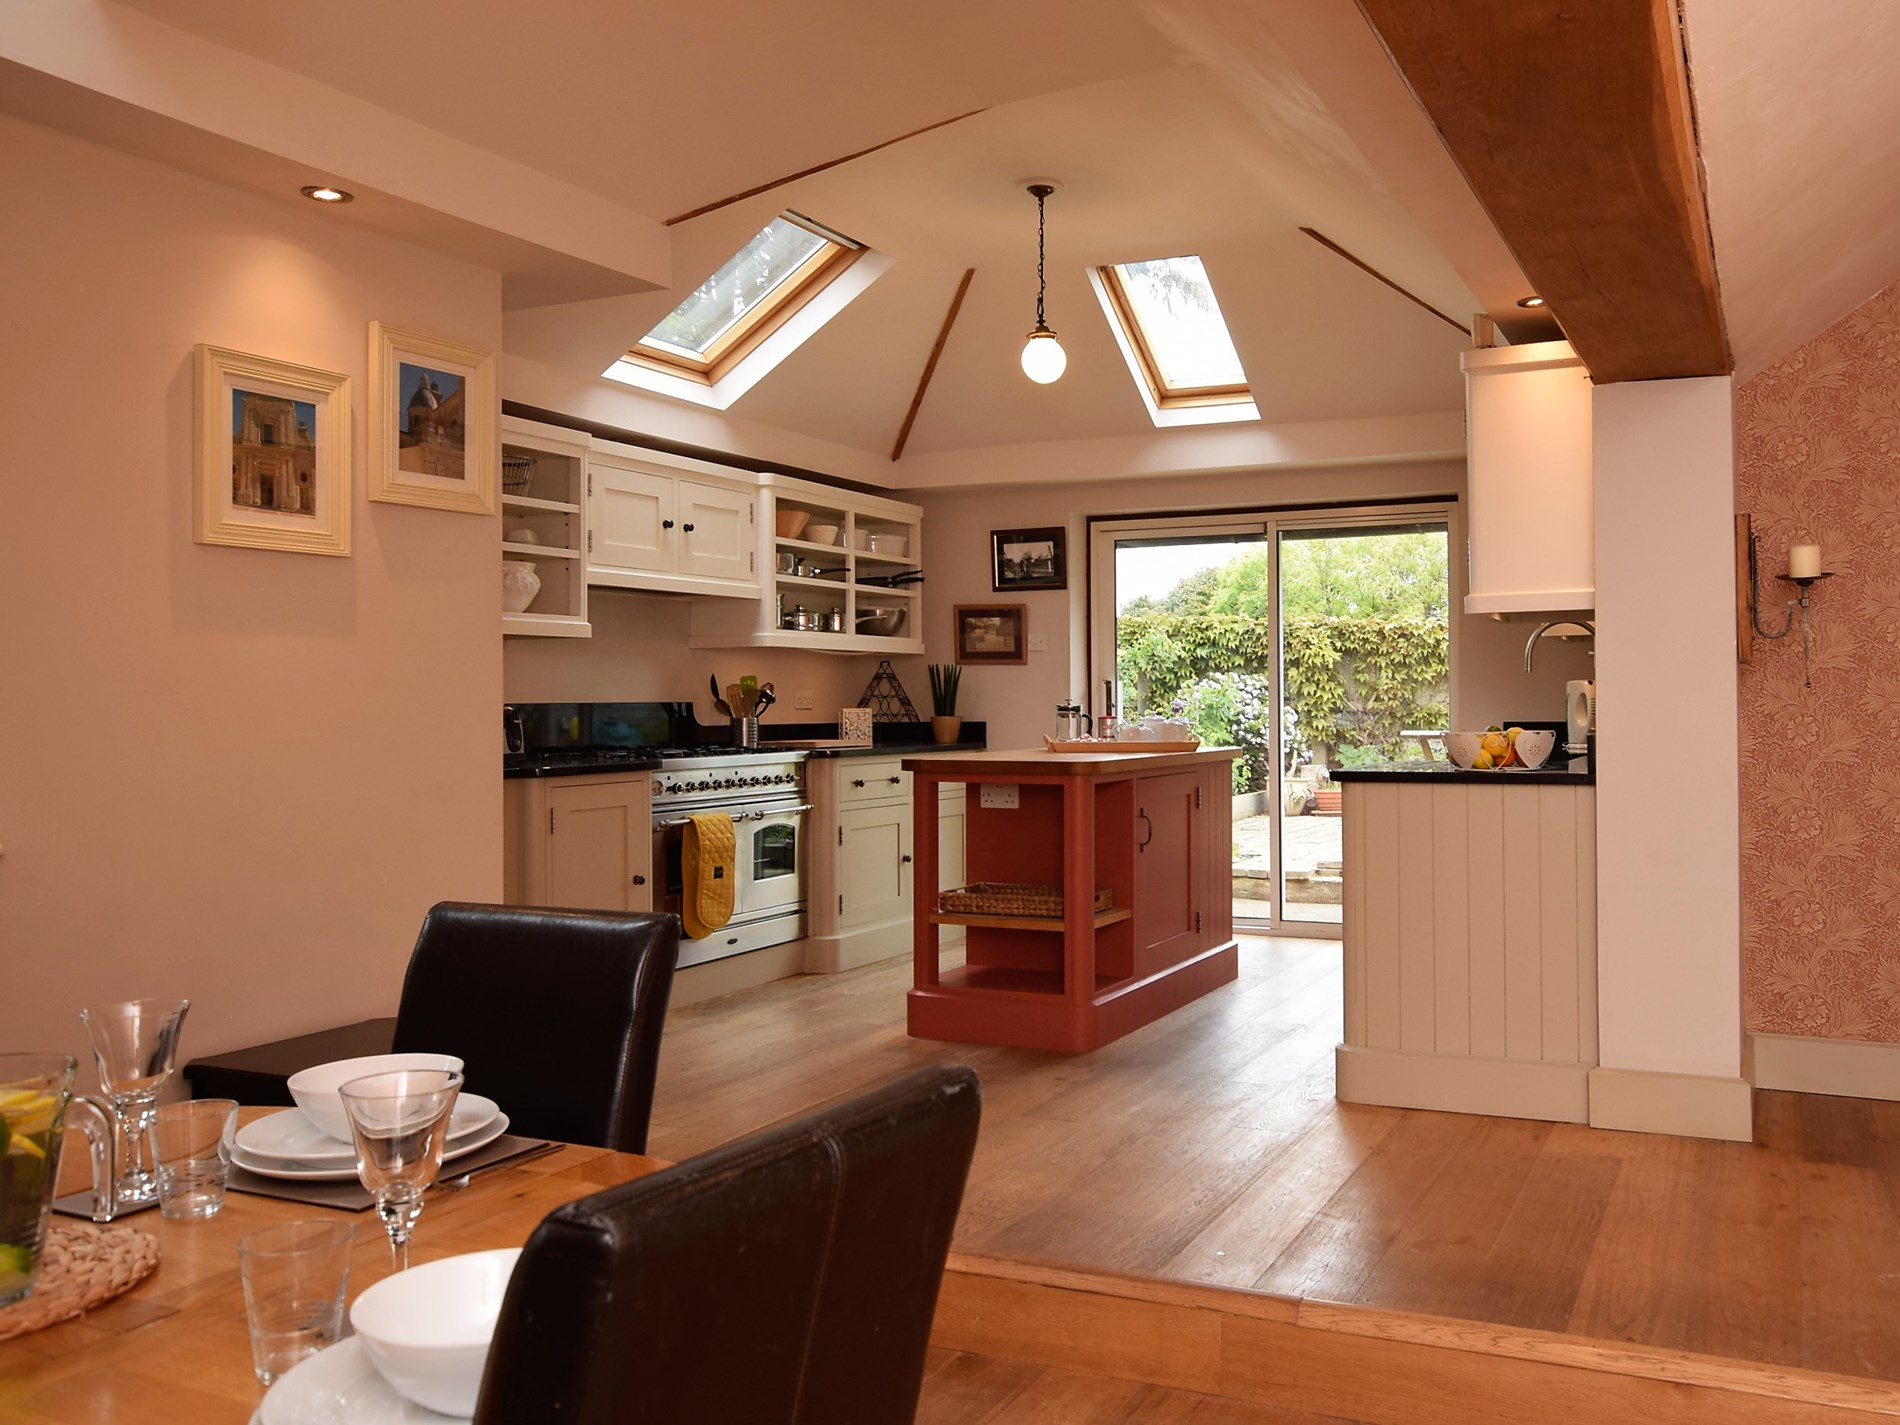 The kitchen/diner is a sociable space to entertain